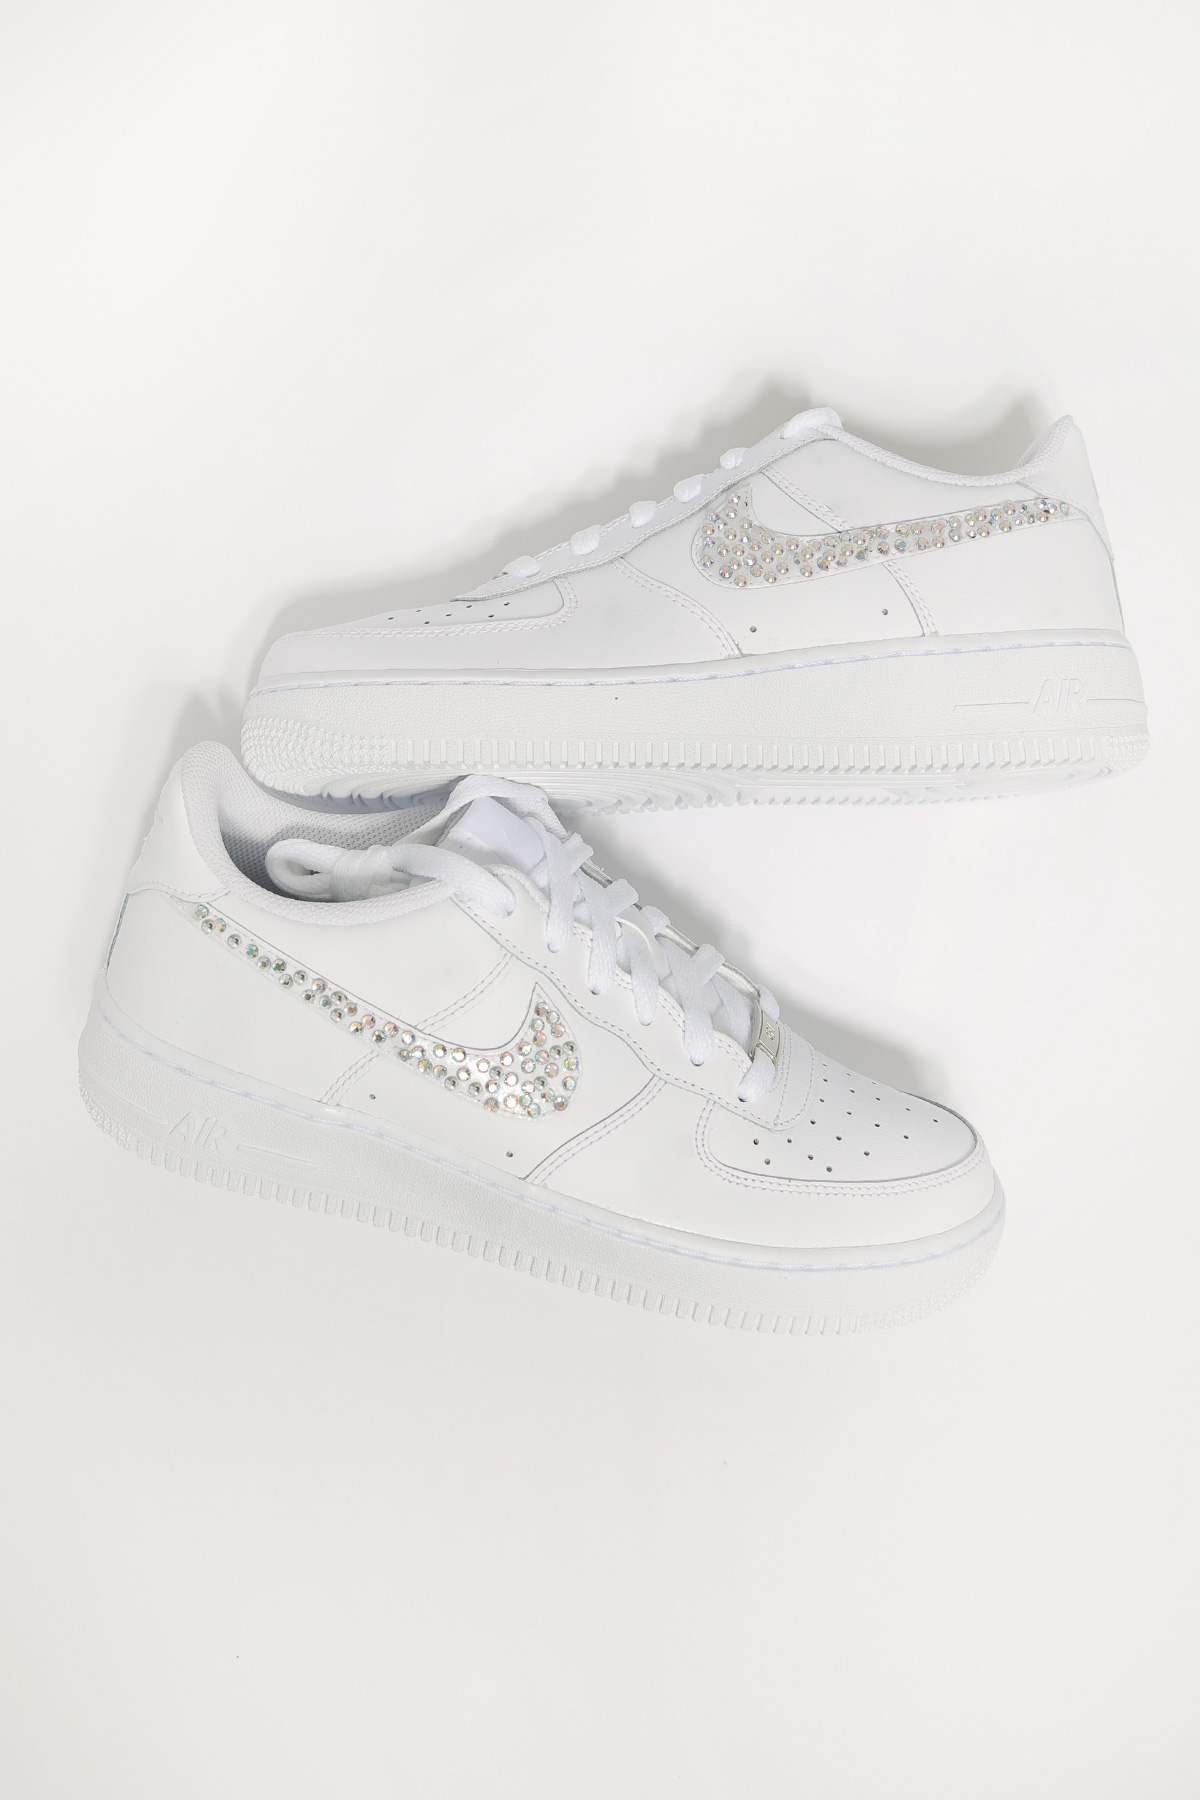 air force 1 costum